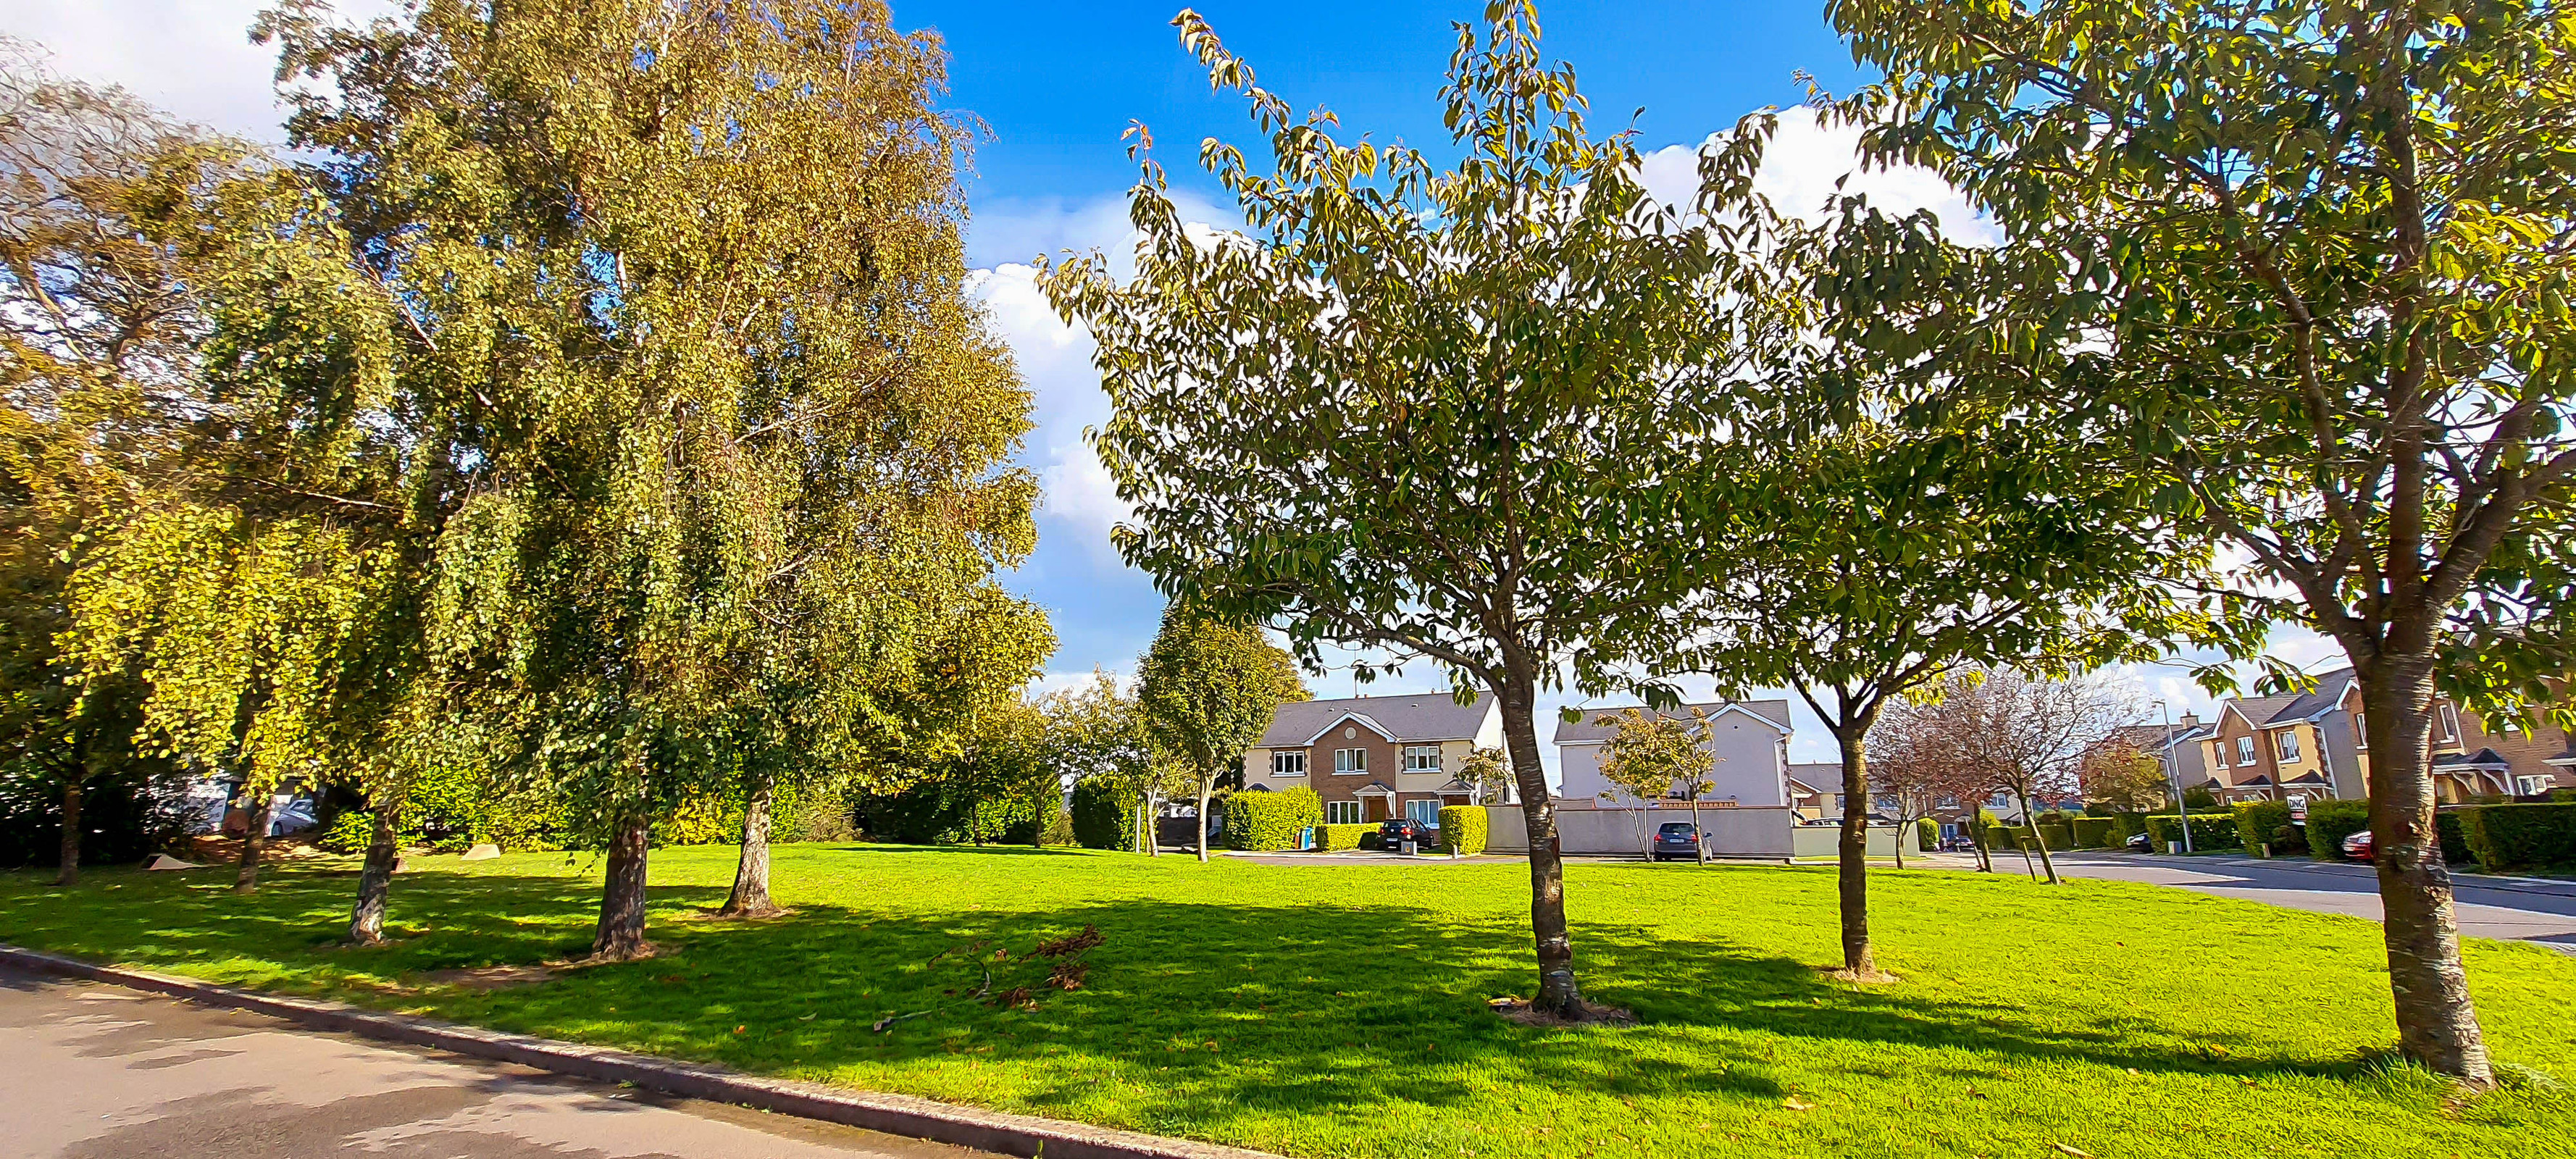 6 Oakwood, Gorey, Co. Wexford